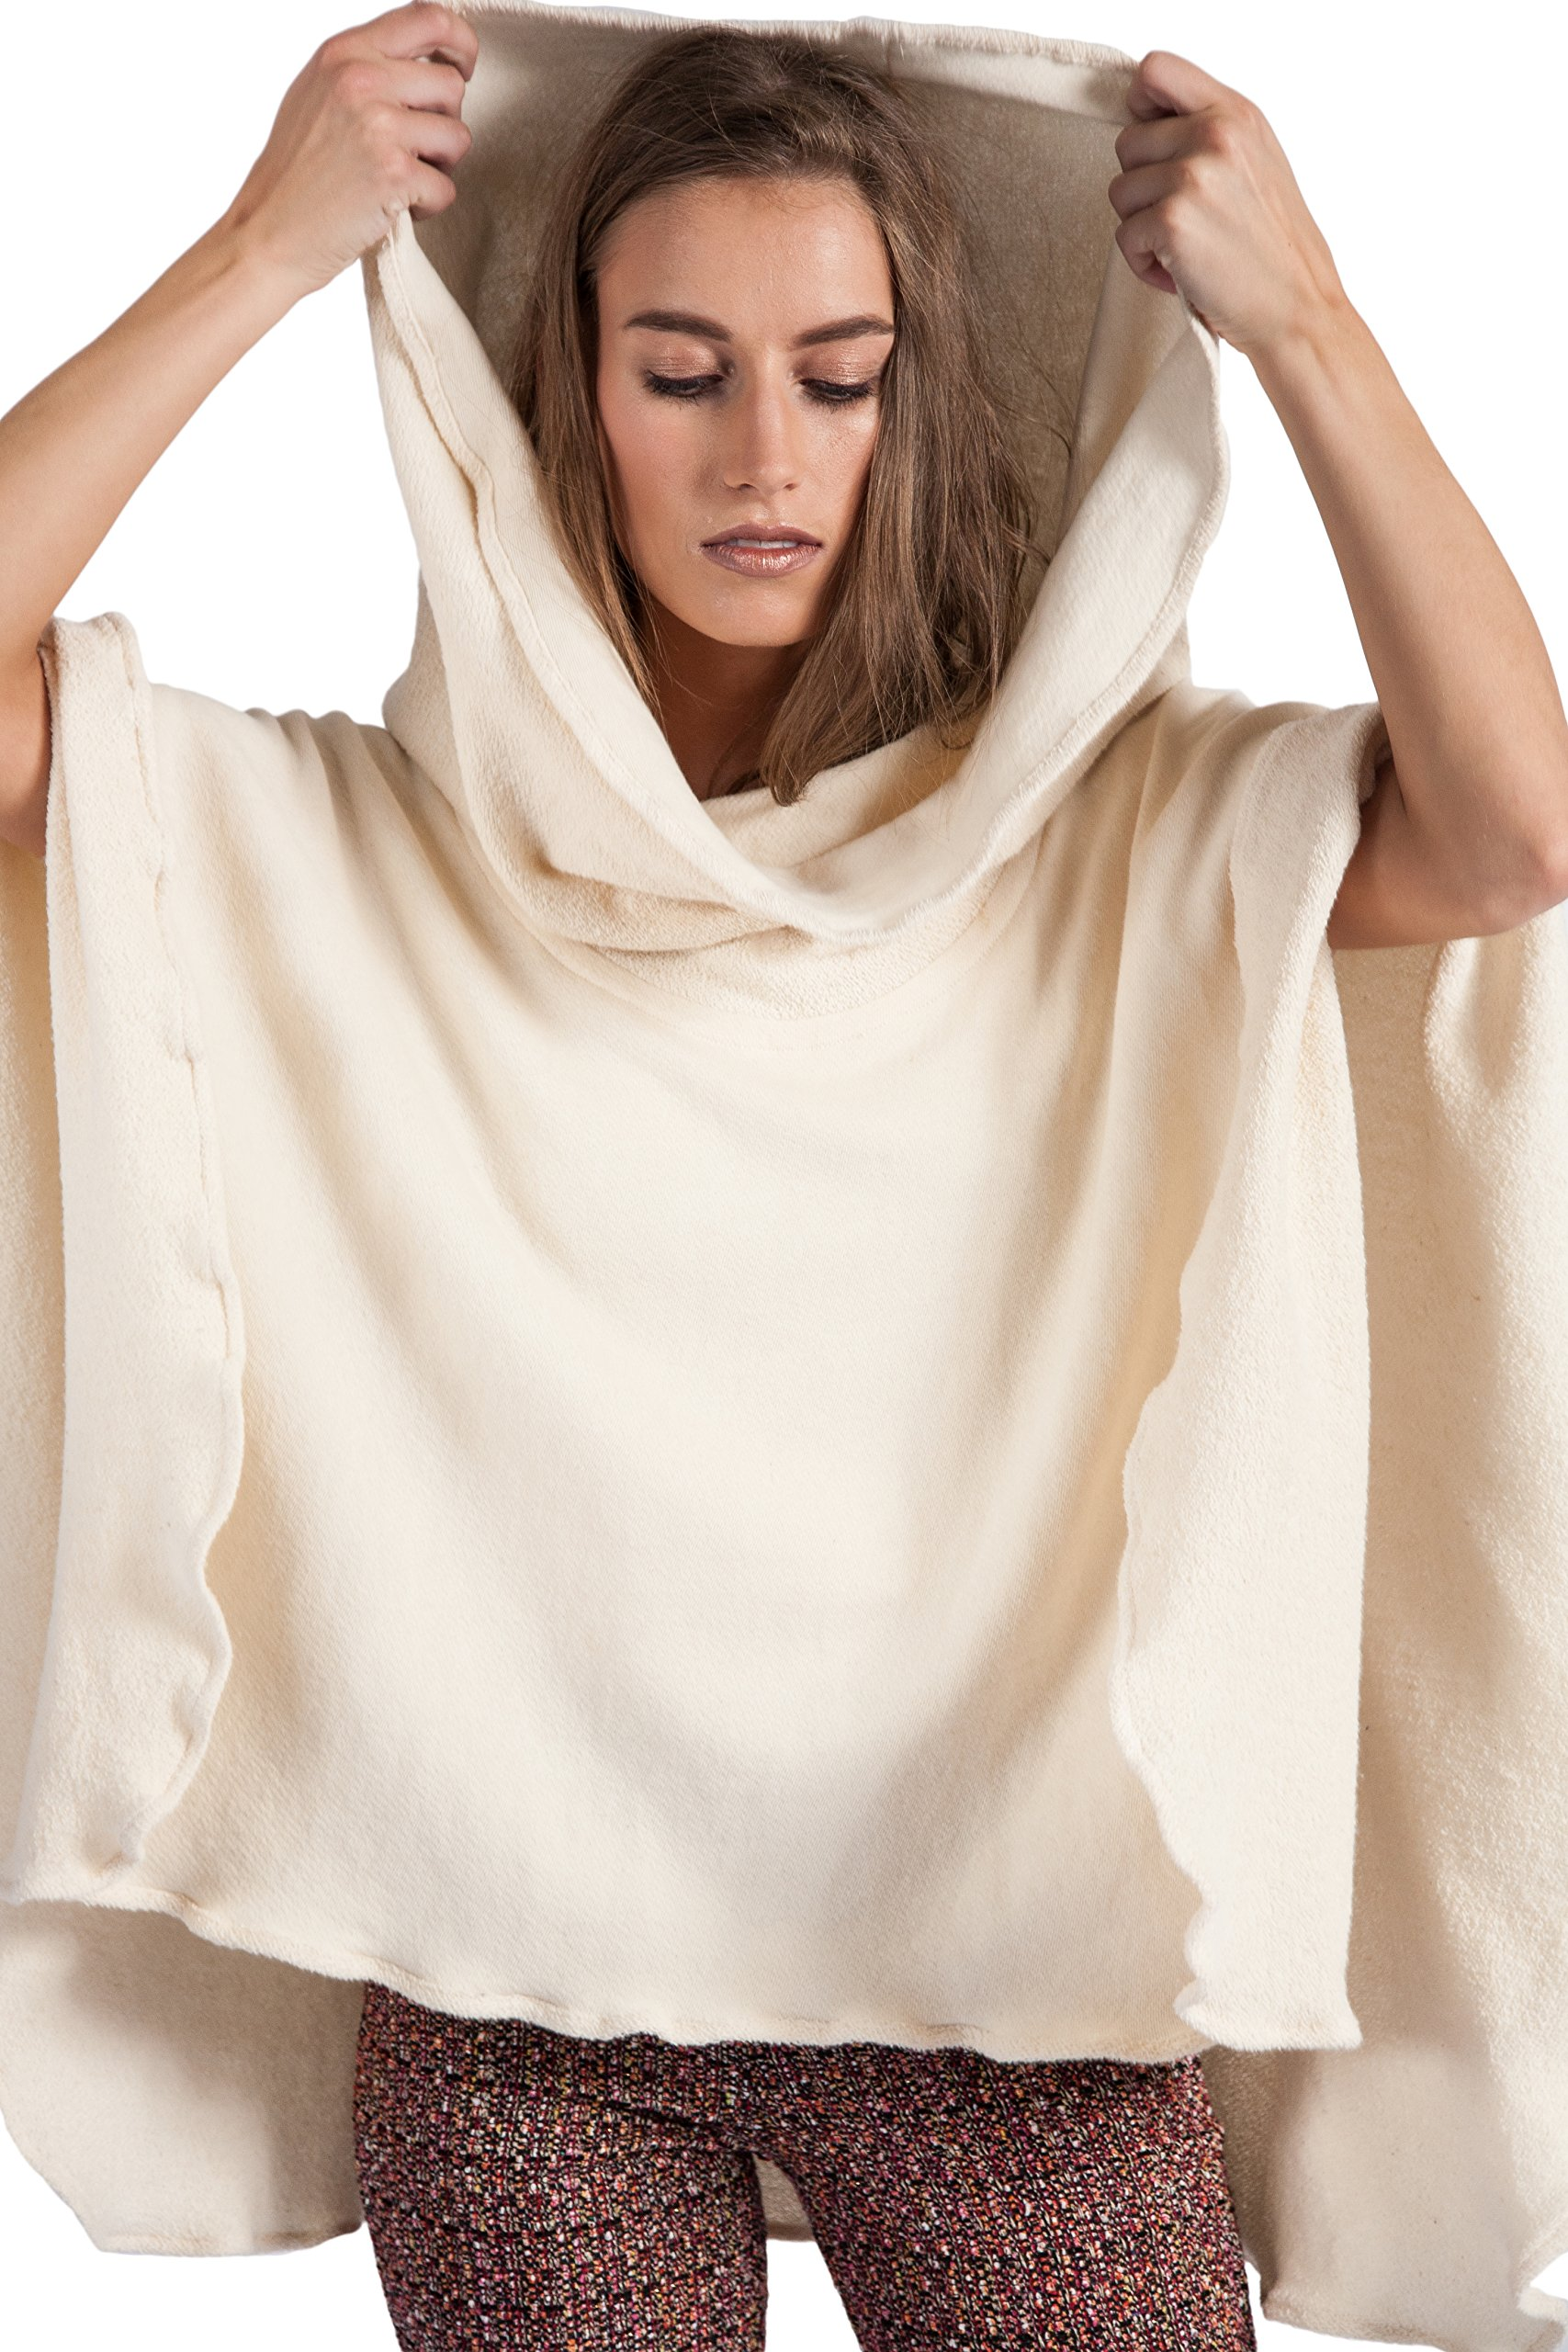 HOODIE PONCH Heidi Hess Designer Poncho Sweater Converts Into Scarf, Hoodie or Top - Cream, One Size